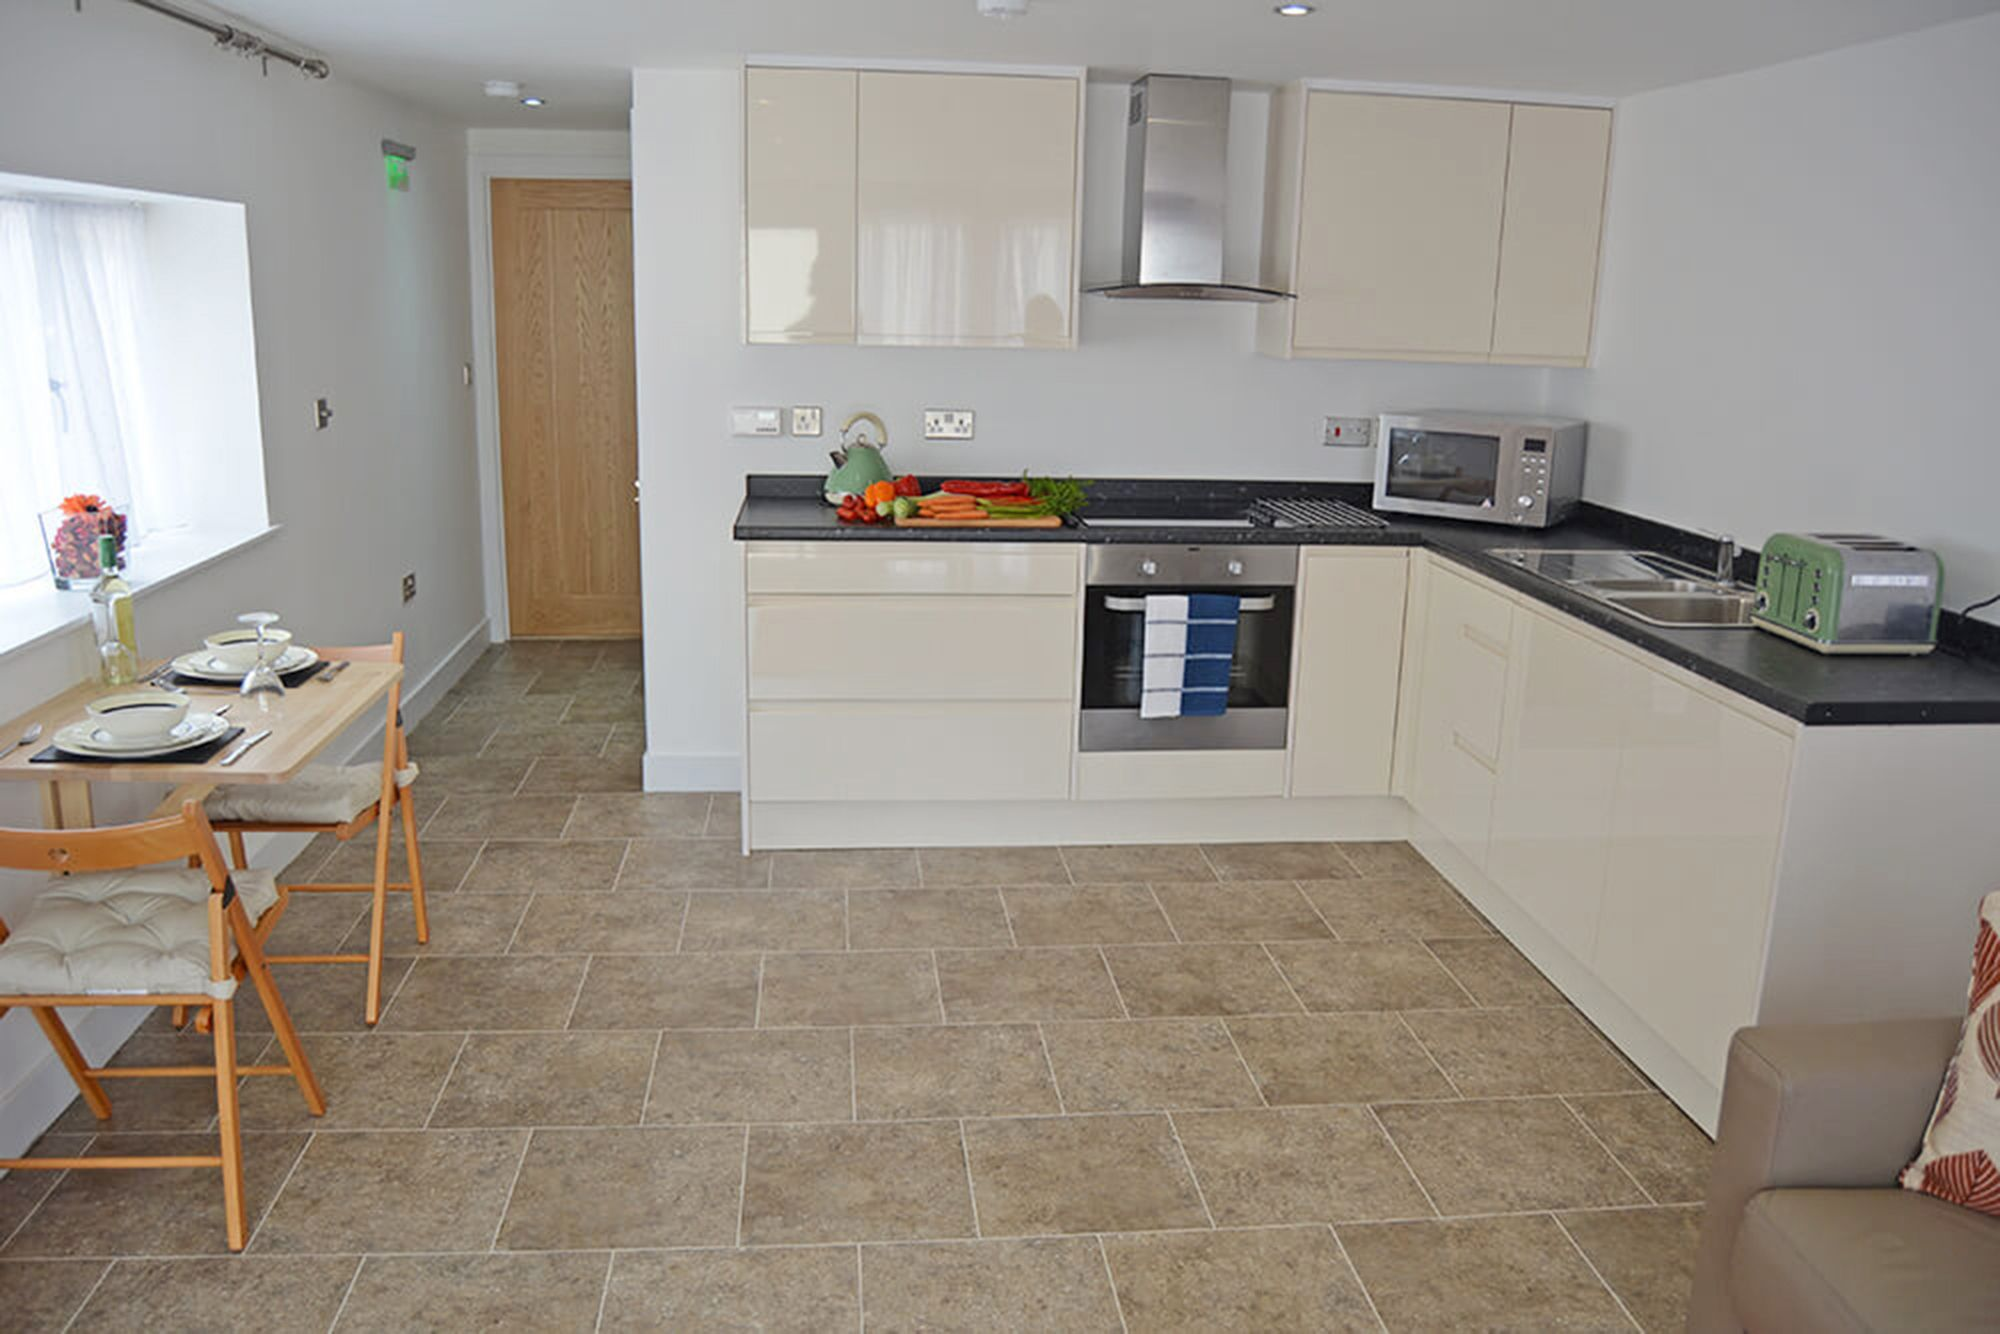 Kitchen and dining area in the open plan living space